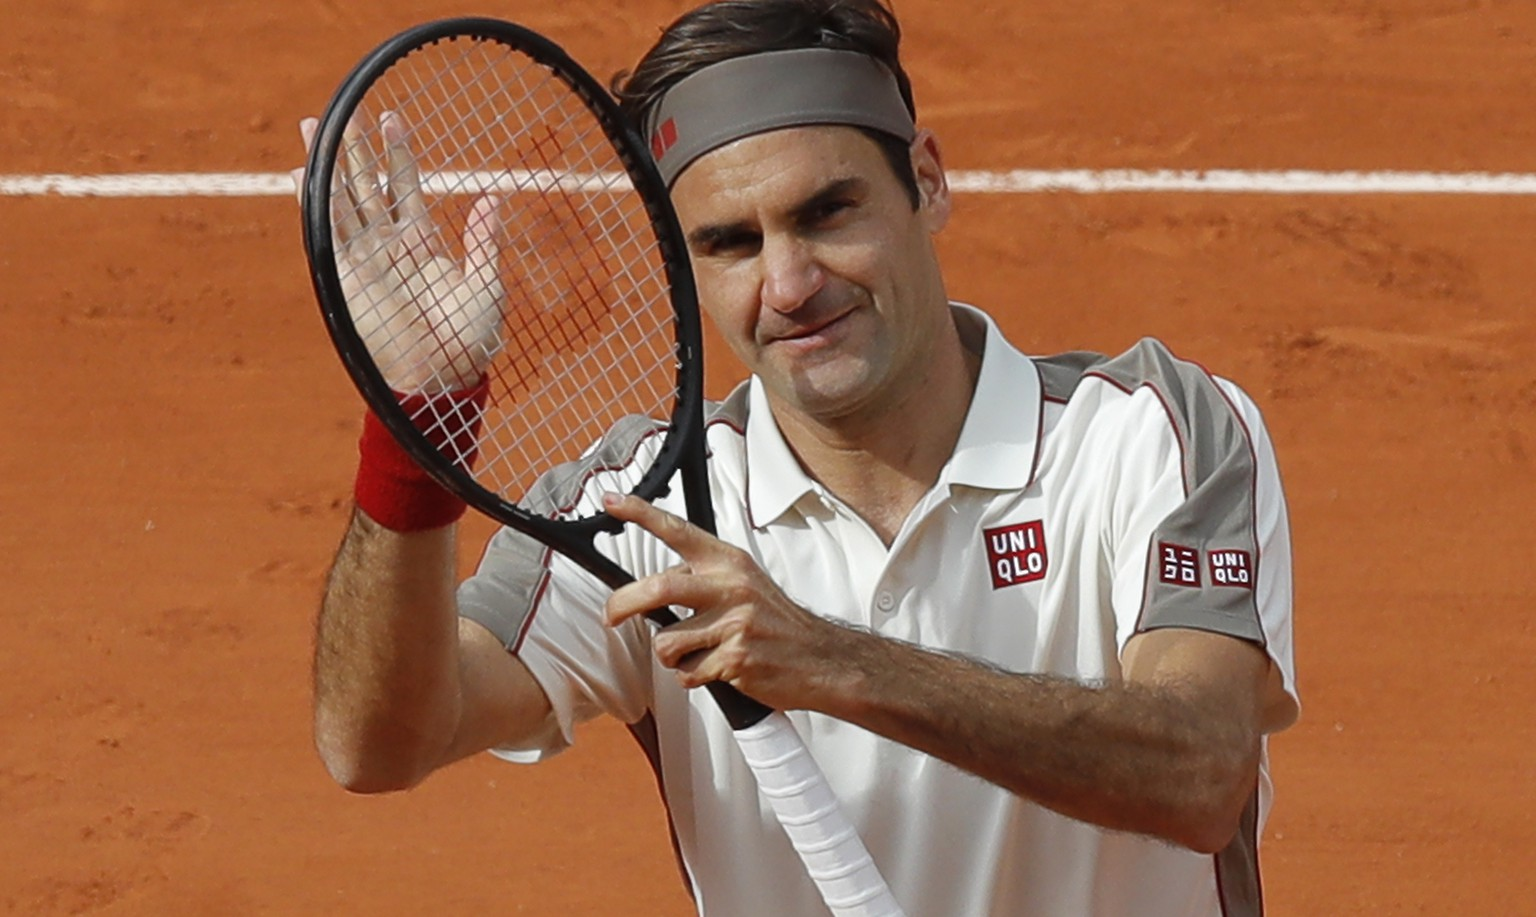 Switzerland's Roger Federer celebrates winning his second round match of the French Open tennis tournament against Germany's Oscar Otte in three sets 6-4, 6-3, 6-4, at the Roland Garros stadium in Paris, Wednesday, May 29, 2019. (AP Photo/Michel Euler)